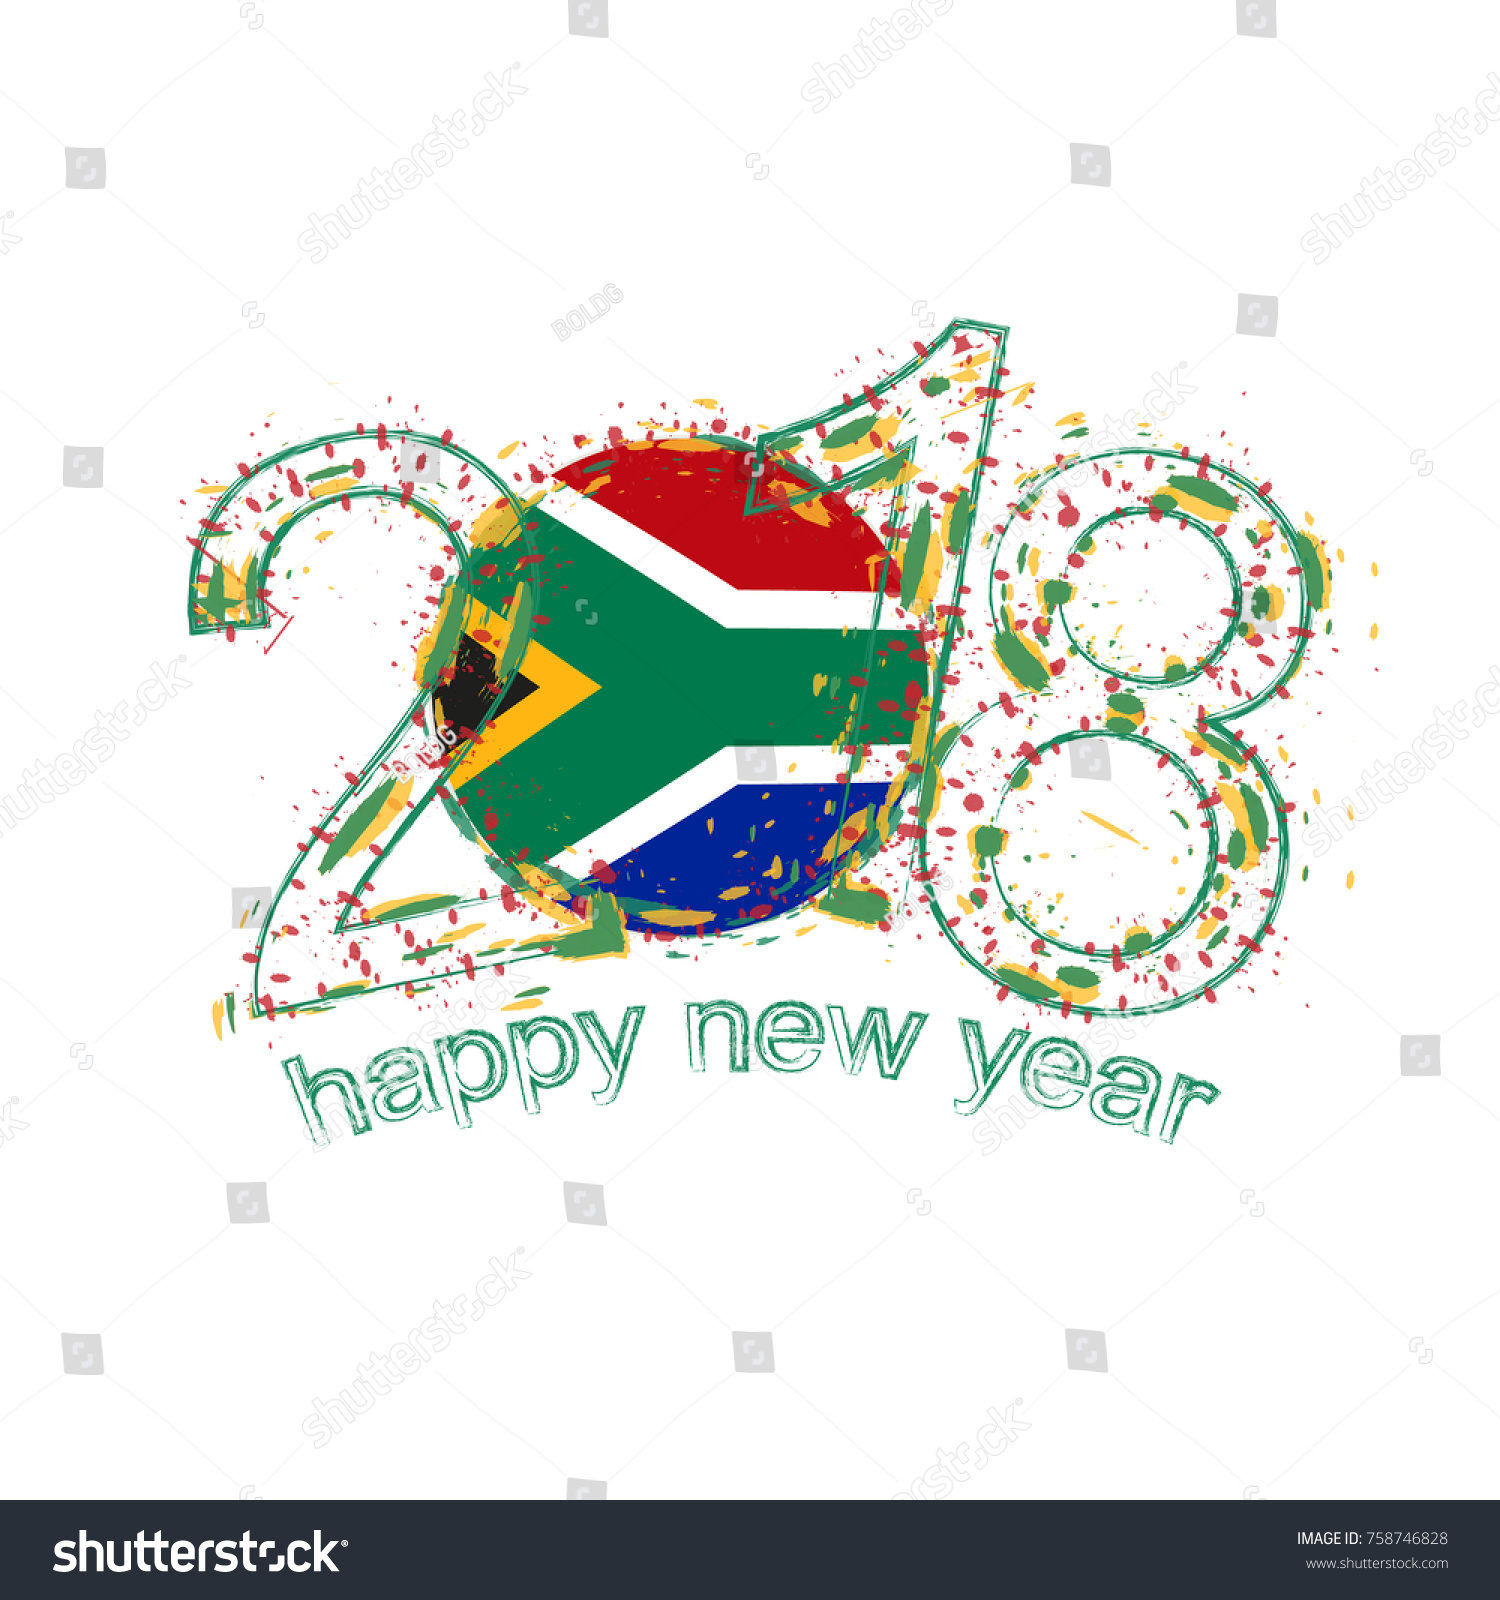 2018 happy new year south africa stock vector royalty free 2018 happy new year south africa grunge vector template for greeting card calendars 2018 m4hsunfo